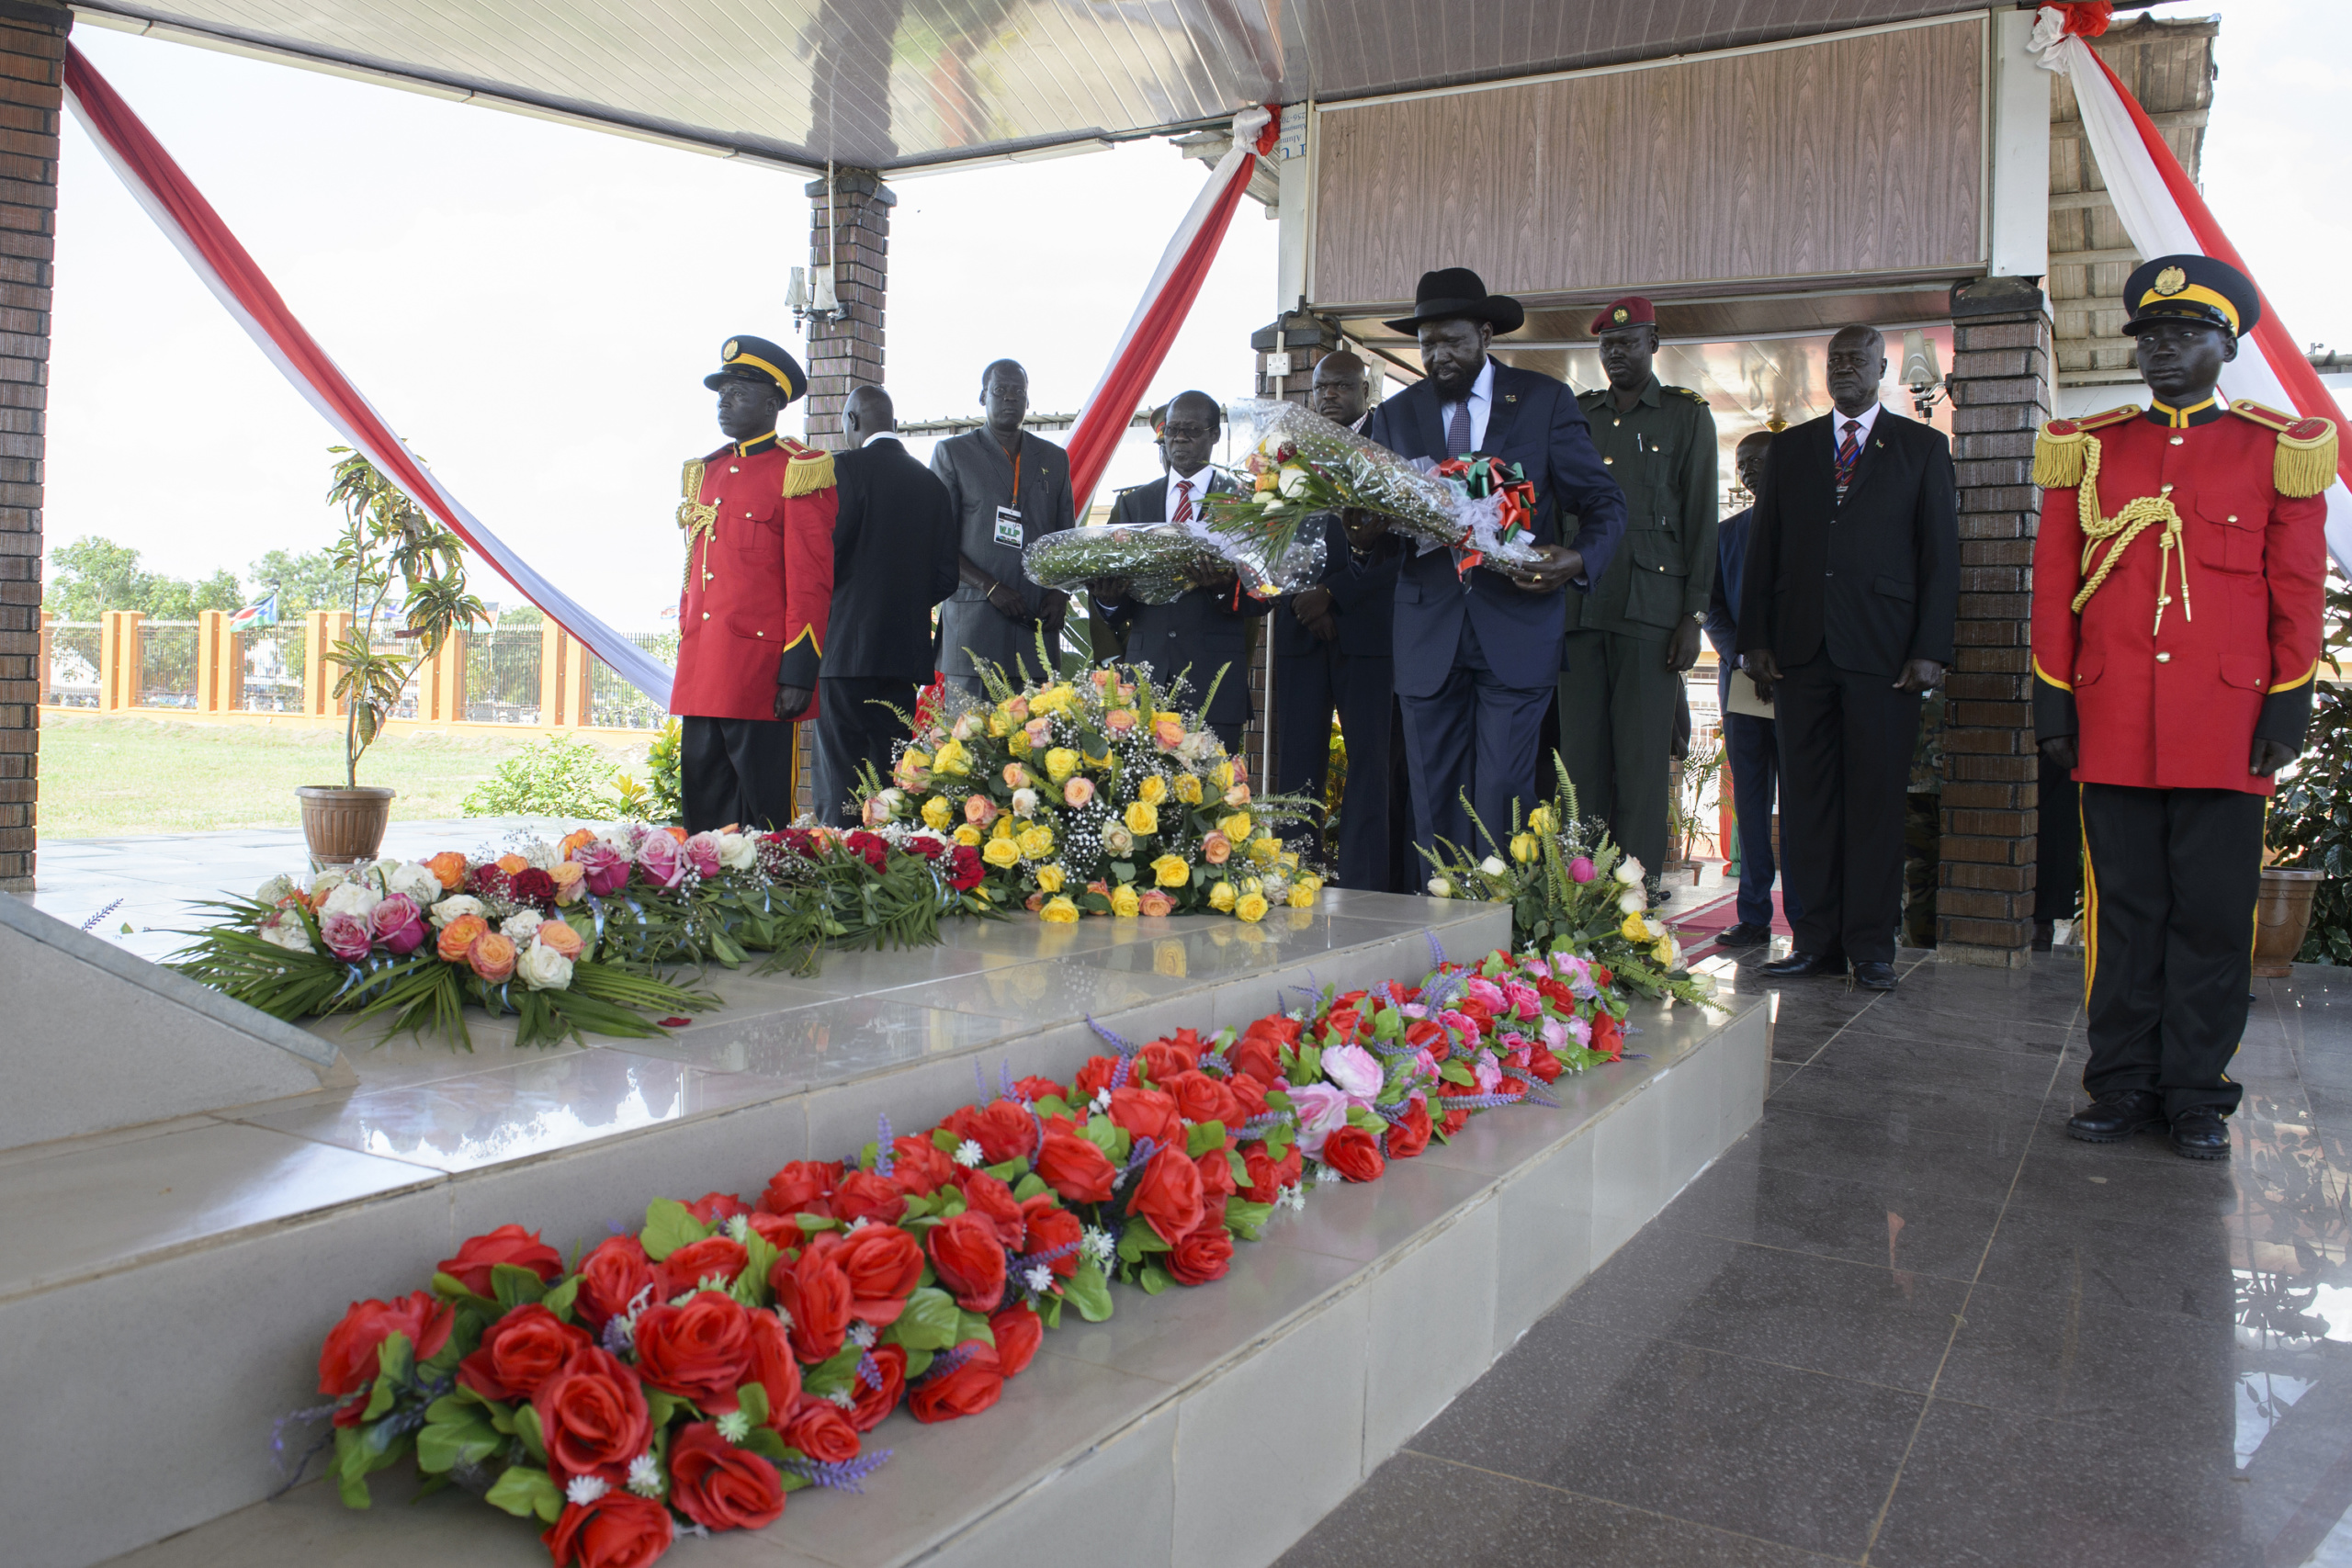 — SOUTH SUDAN Juba, South Sudan. South Sudan President Salva Kiir stand at attention at the grave of Dr. John Garang at Dr. John Garang Memorial in Juba. On 9th of July 2011 a new country will be born in Africa. The Republic of South Sudan will be the 54th African state and the 193rd nation in the world. But South Sudan is a very poor country, despite its large oil reserves, which account for 98 percent of its income. South Sudan's society is deeply divided along tribal lines. The main clan is the Dinka, a pastoral semi-nomadic population. Violence is endemic to the region, often as a consequences of cattle ownership issues. But violence is also very much fed by the uncountable number of weapons circulating in the country, the heavy legacy of a 30 year long civil war against North Sudan.